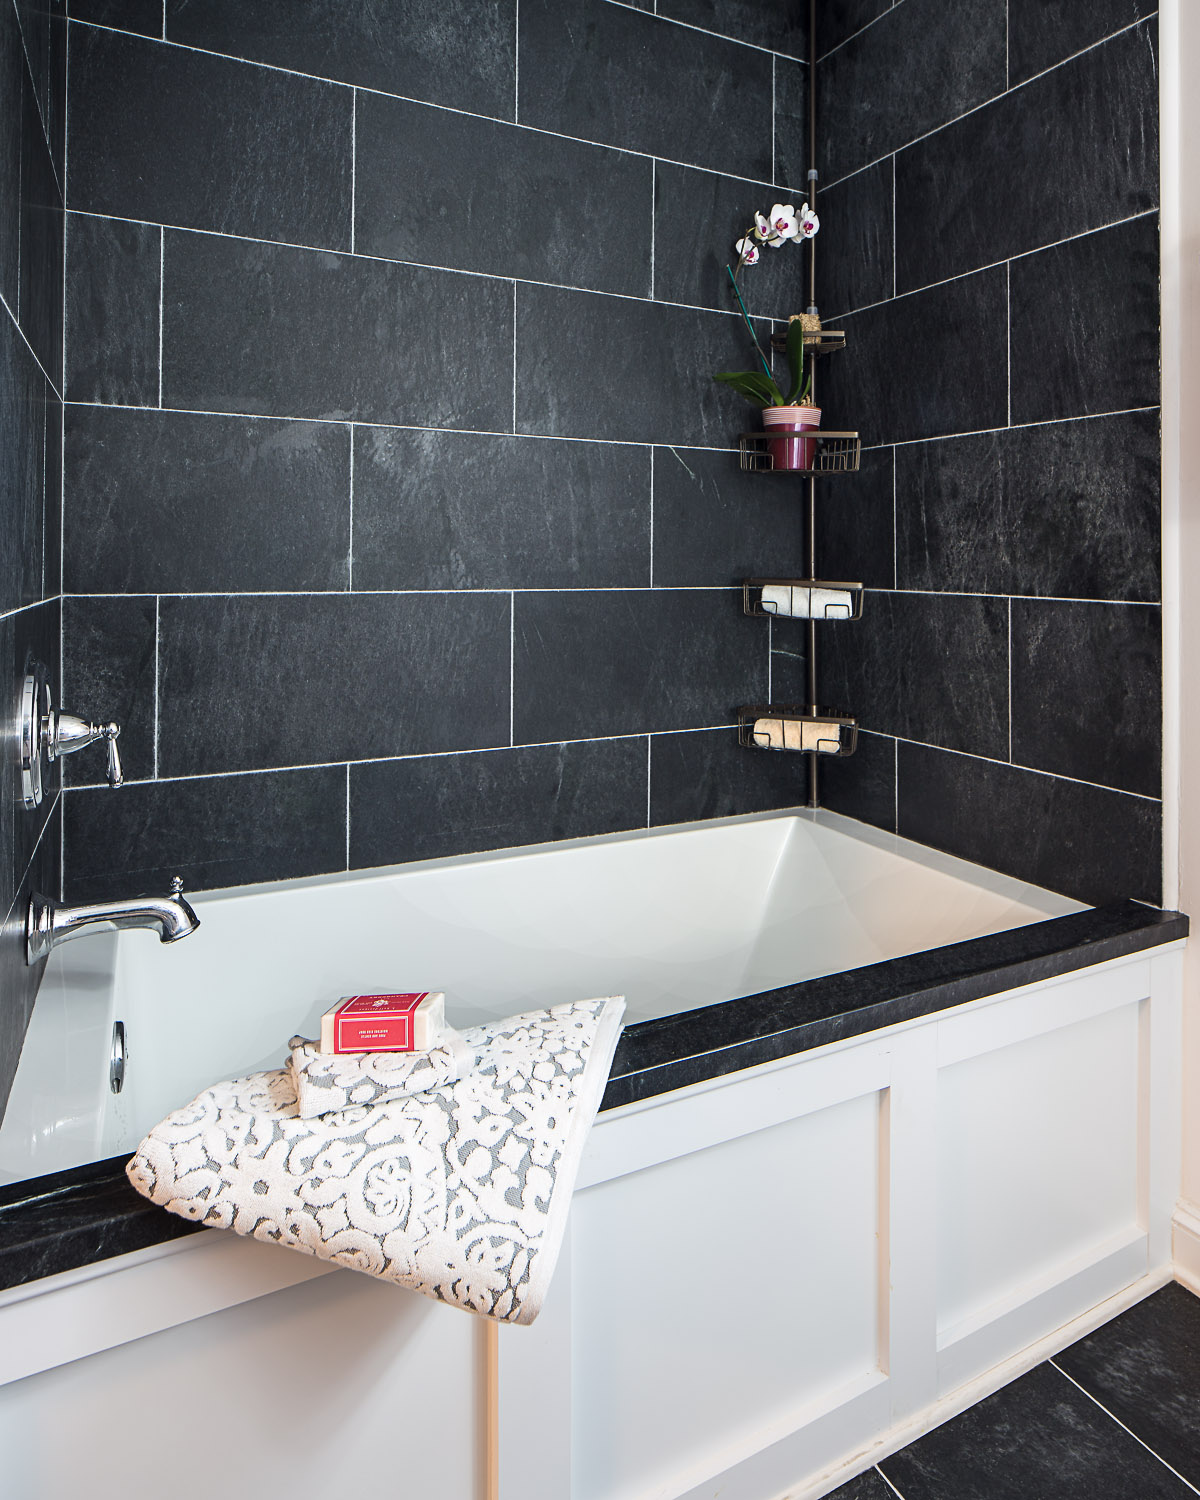 . Slip Into Something More Comfortable With a Soapstone Bathroom